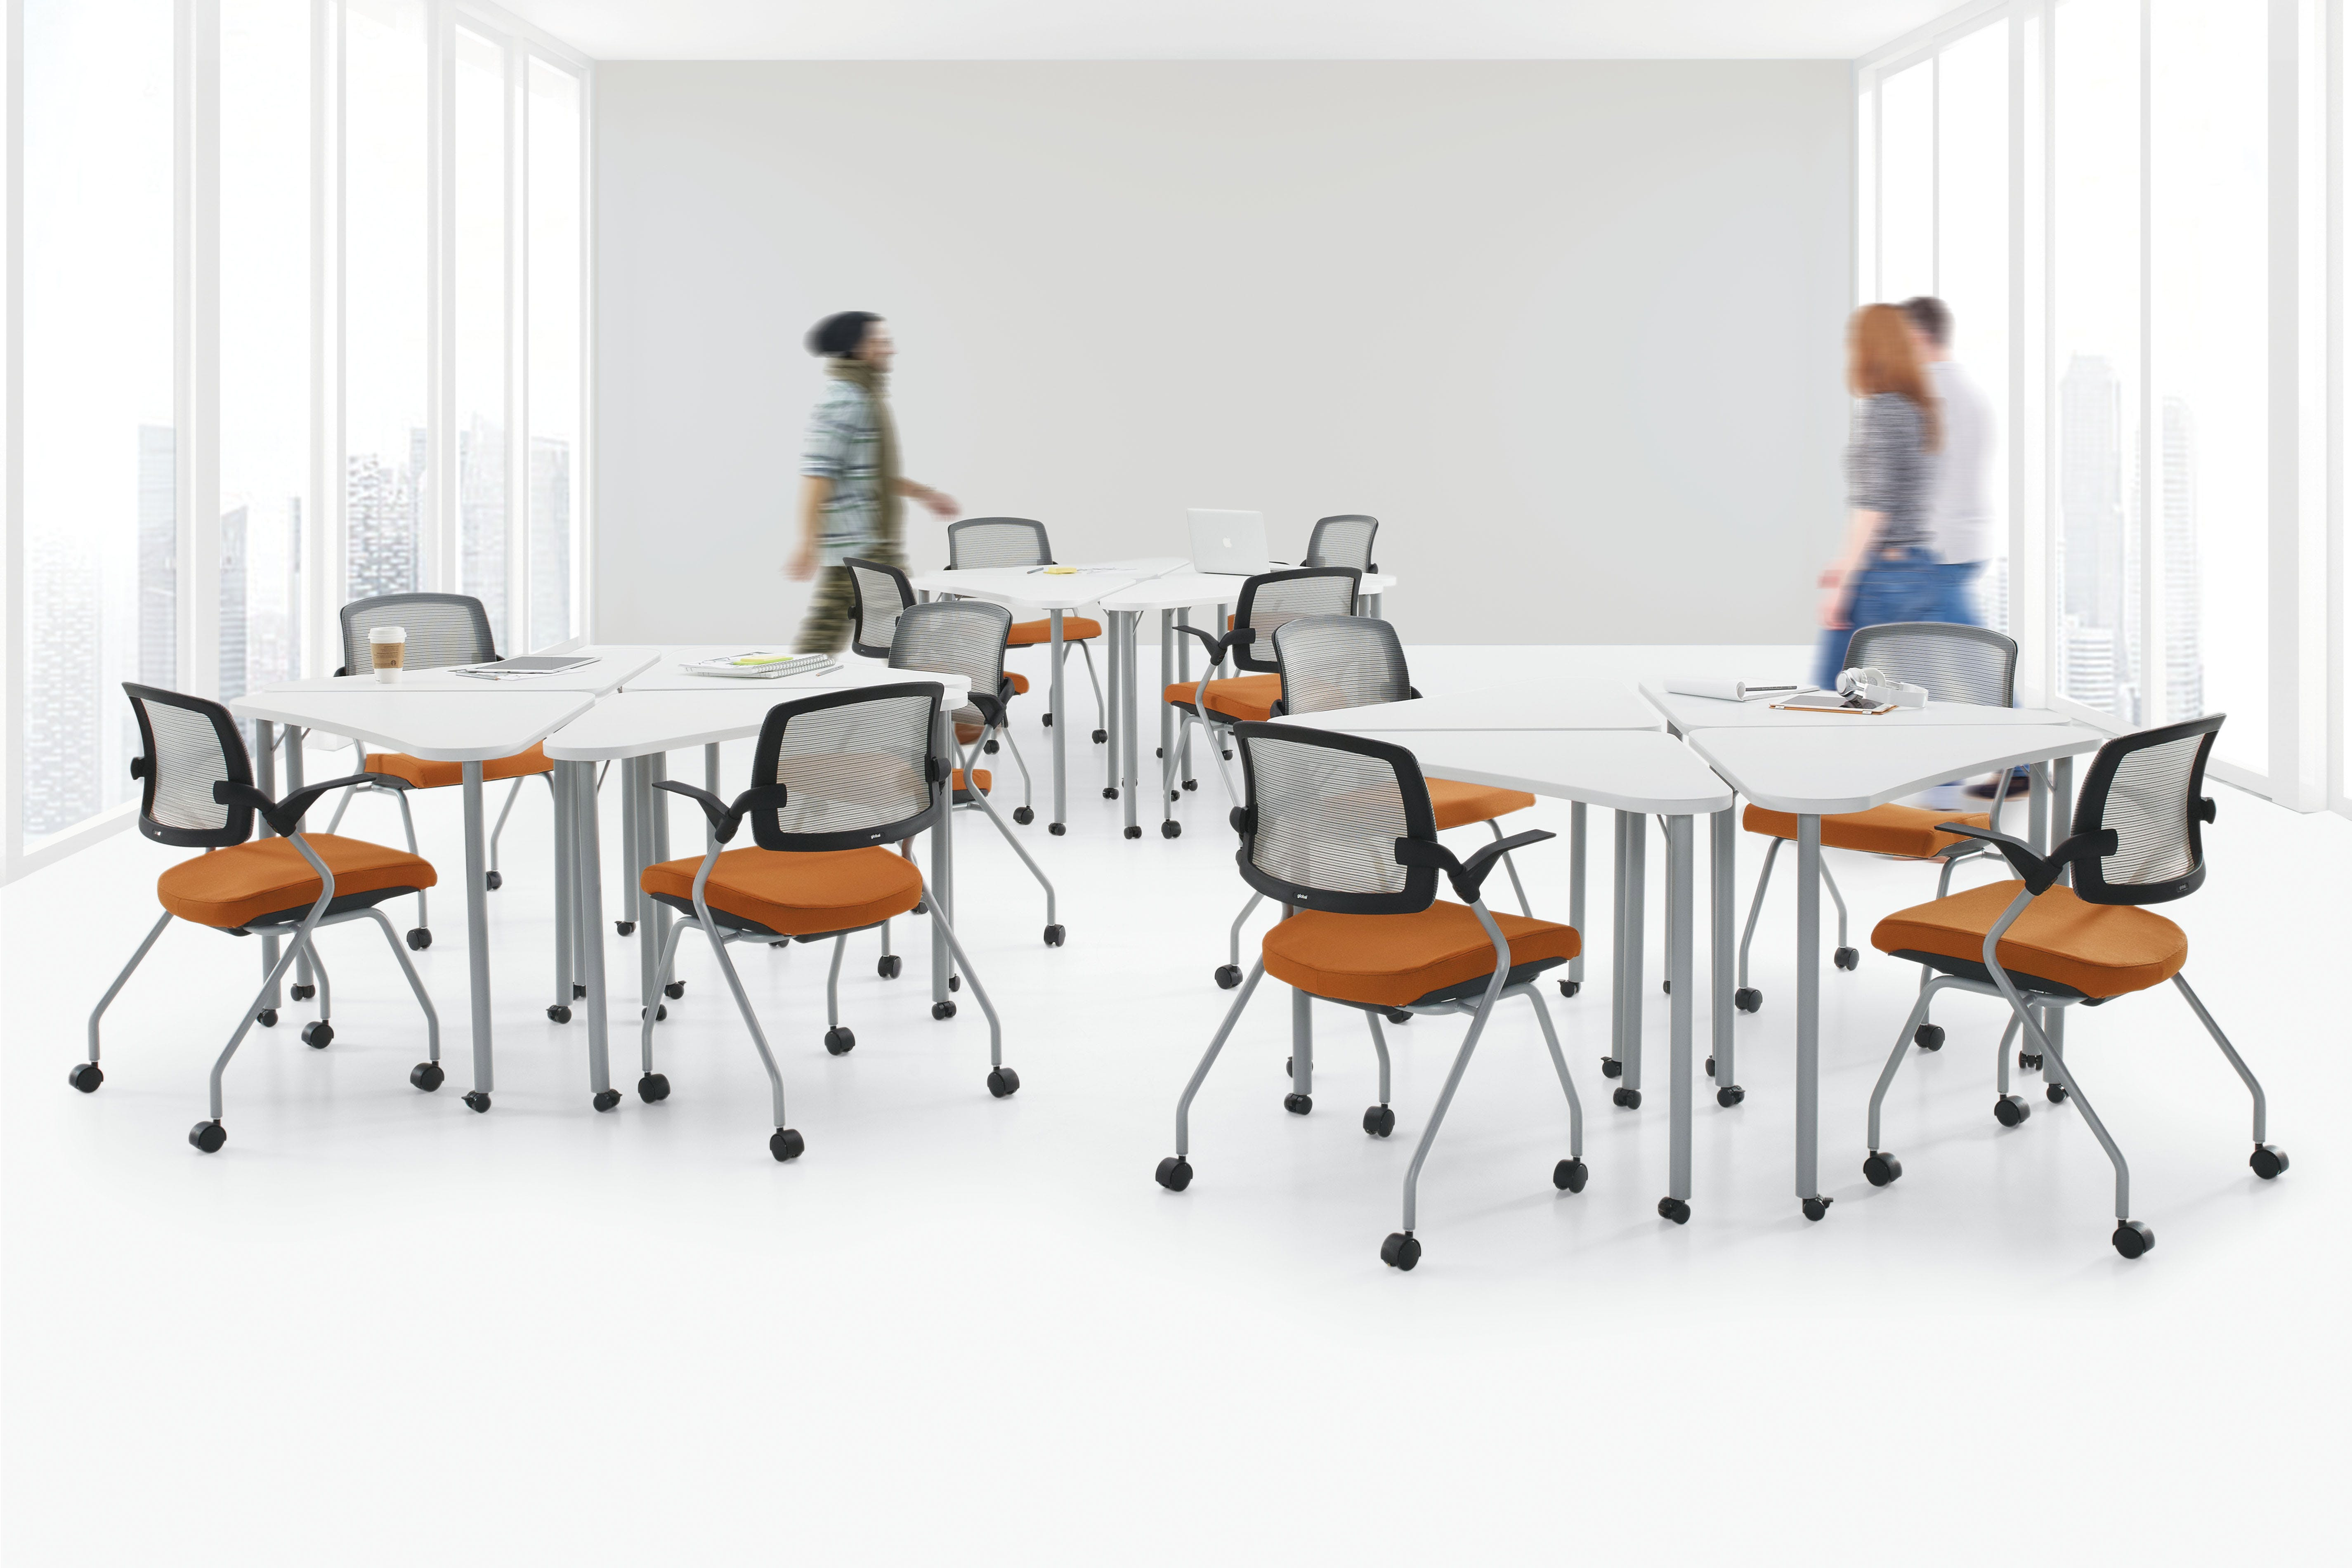 Awesome Zook Tables Inspire Workplace Interiors Download Free Architecture Designs Scobabritishbridgeorg